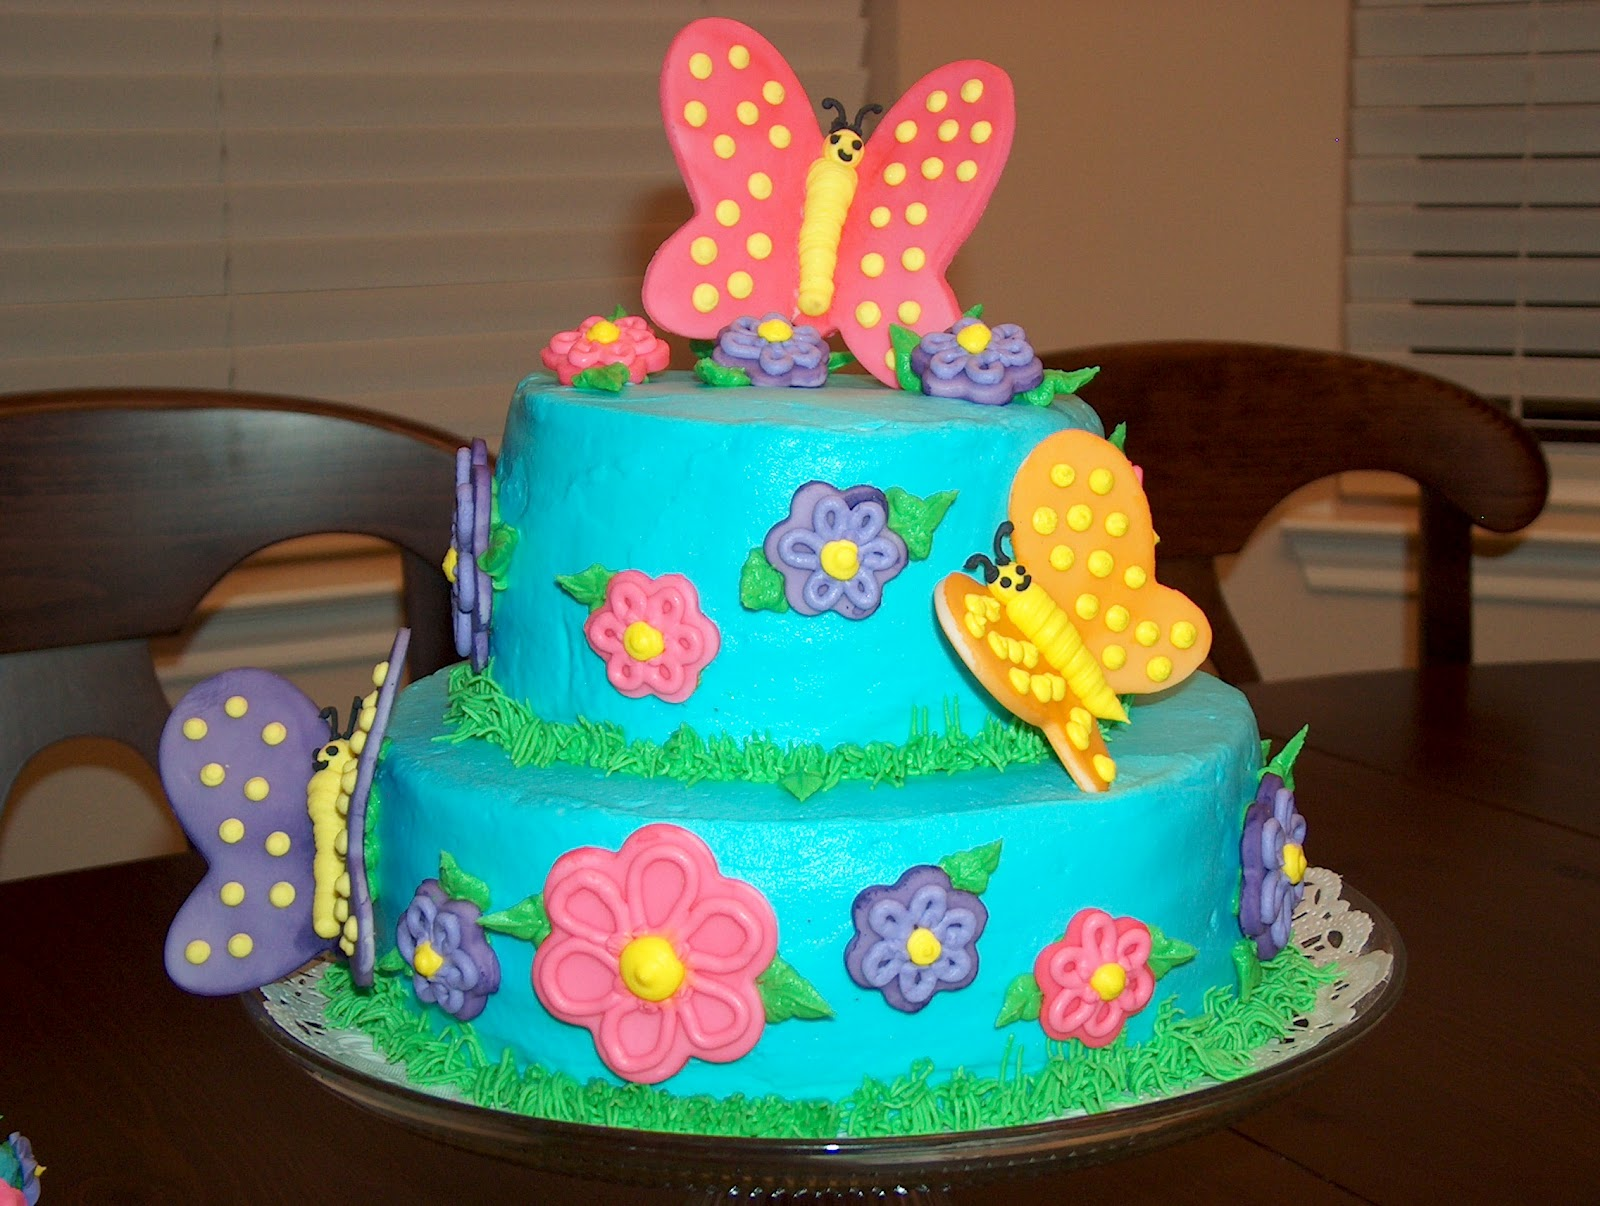 Cake Theme For Birthday : Themed Cakes, Birthday Cakes, Wedding Cakes: ButterFly ...